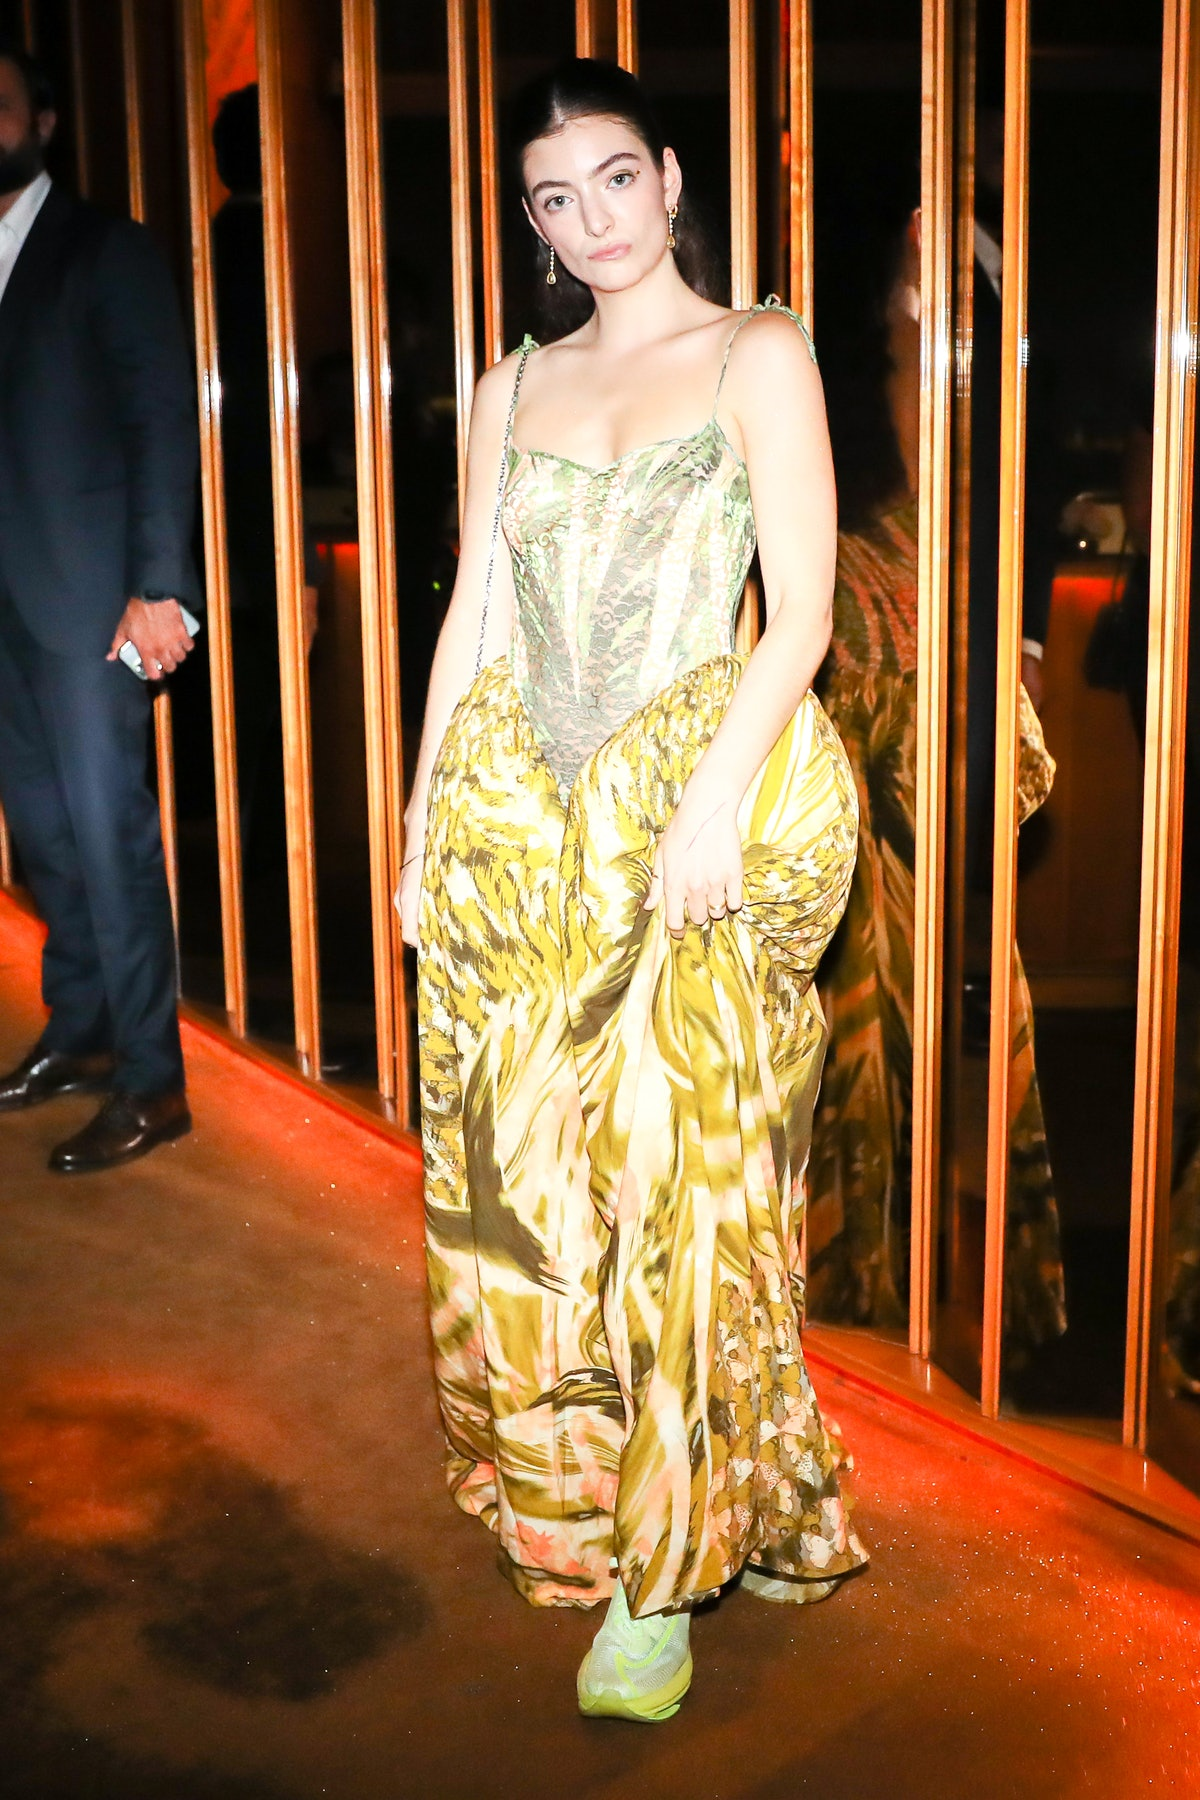 Lorde attends a Met Gala after-party at the Boom Boom Room on September 13, 2021.